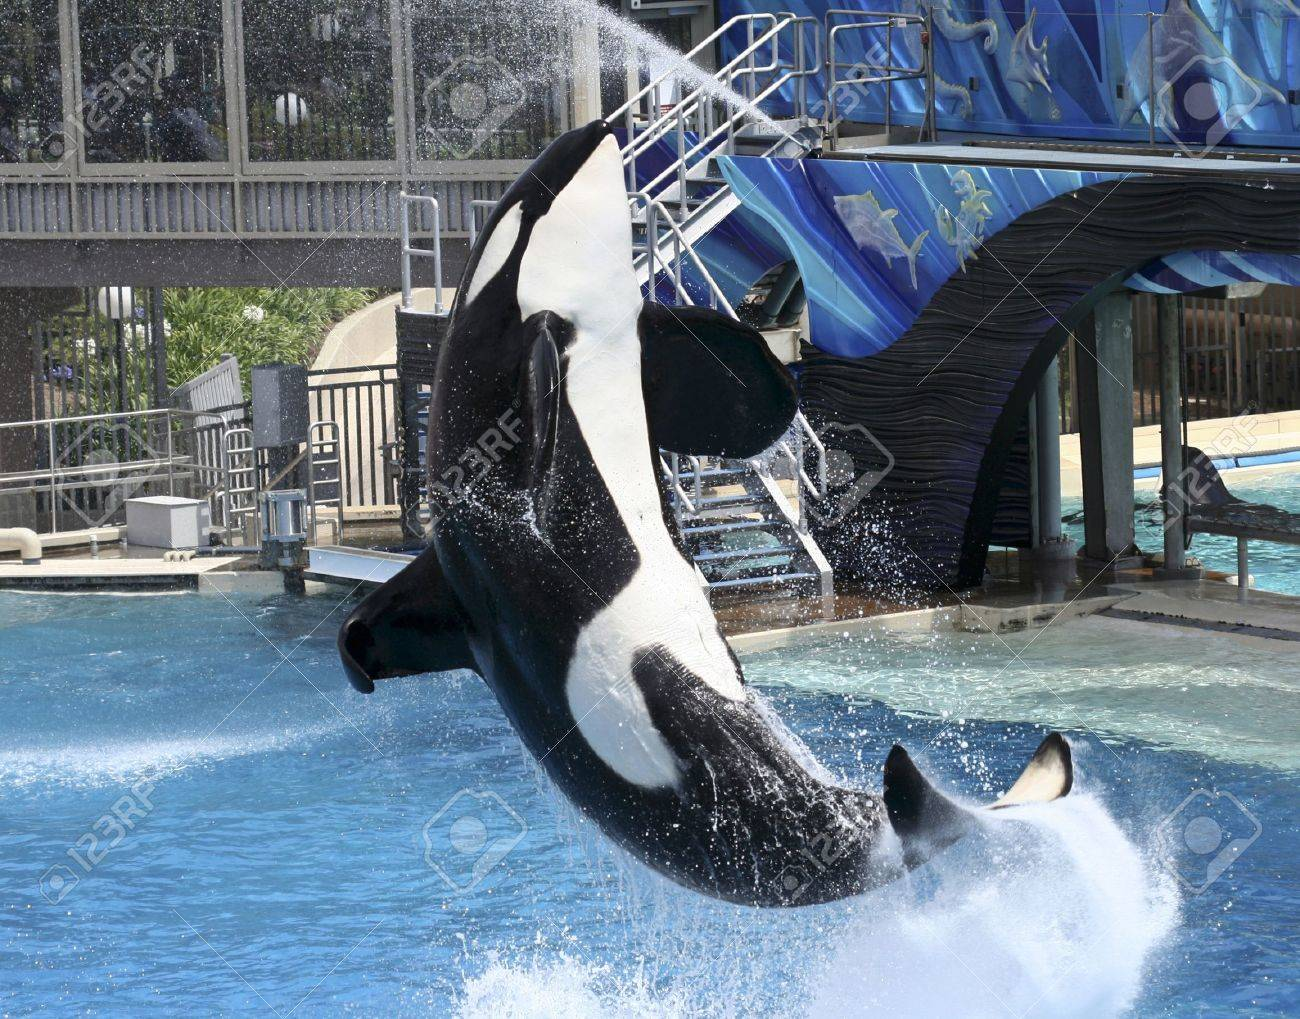 A Large Male Killer Whale Performs in a Marine Park Show - 10128342